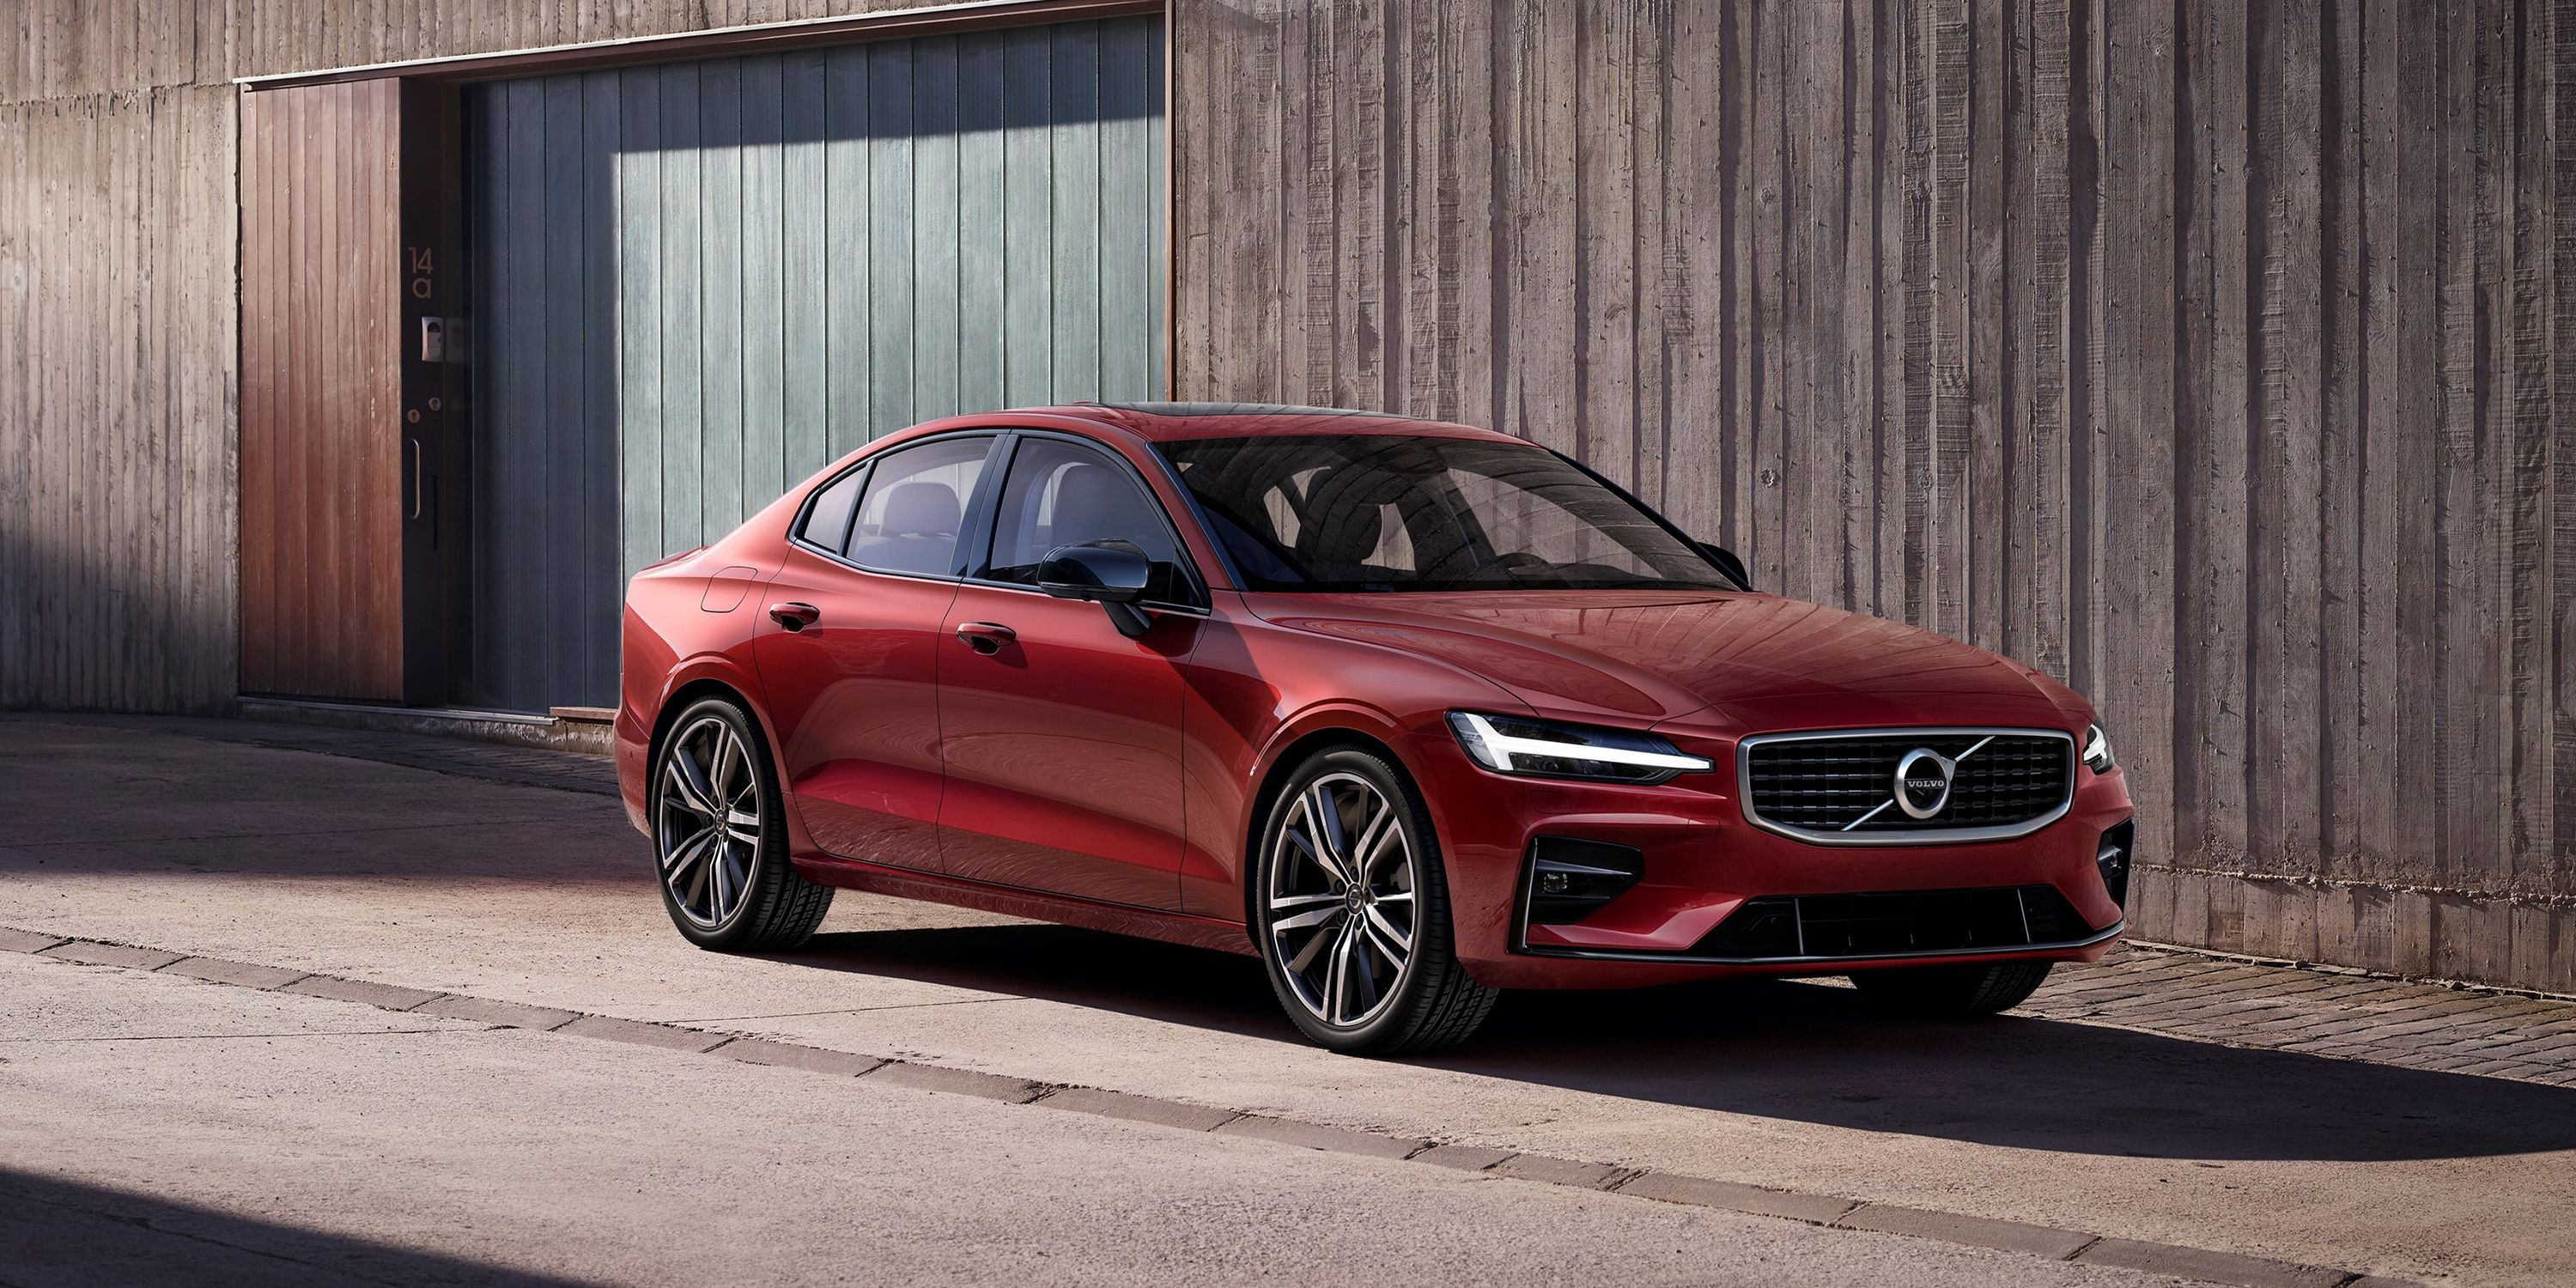 2019 Volvo S60 T8 Polestar Engineered Specs And Photos Of New